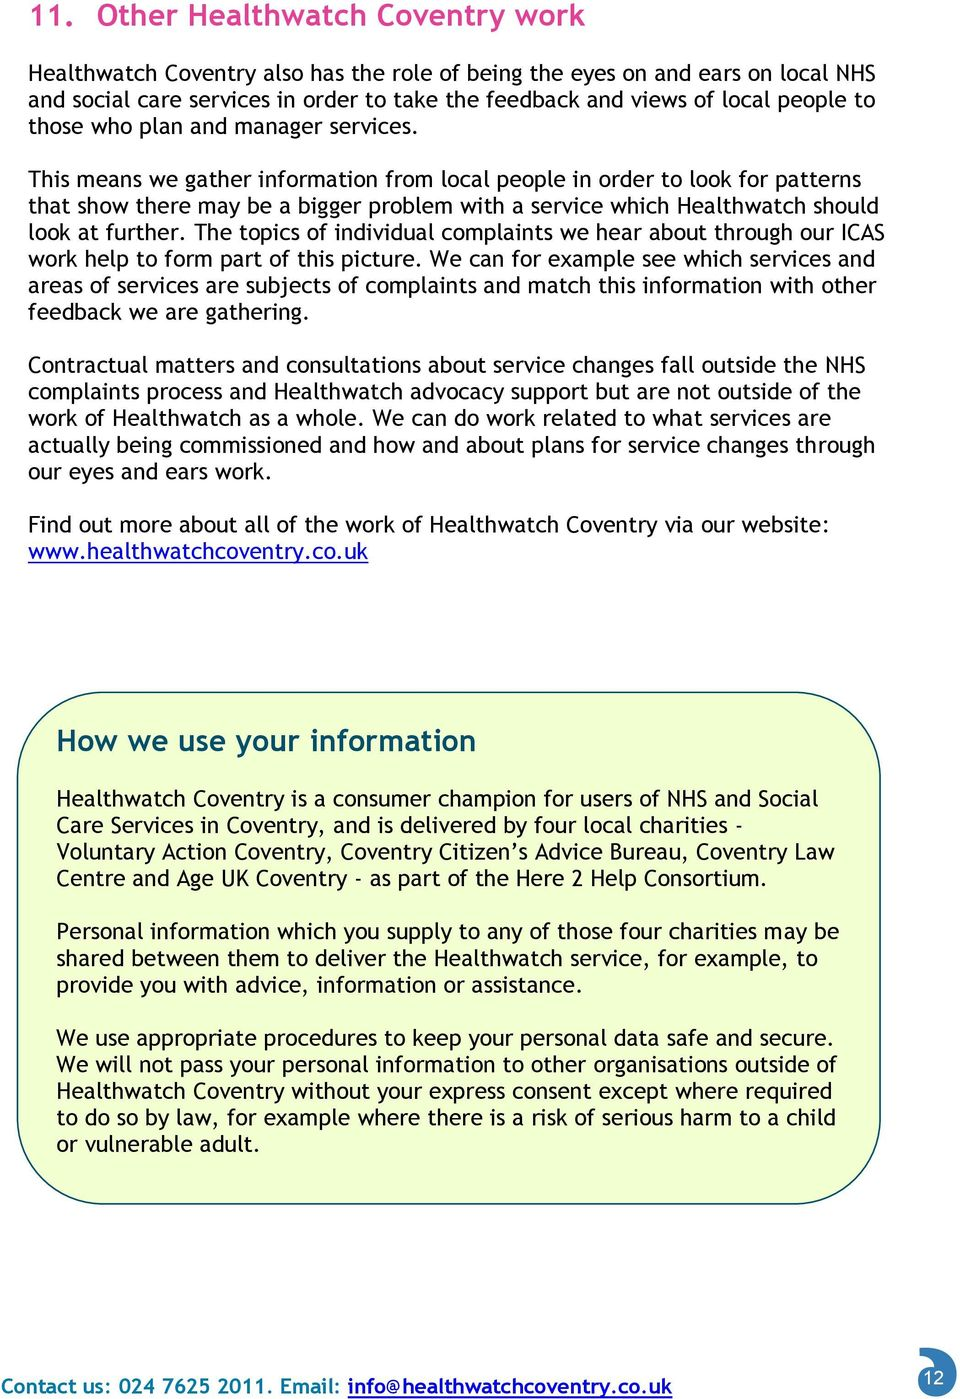 This means we gather information from local people in order to look for patterns that show there may be a bigger problem with a service which Healthwatch should look at further.